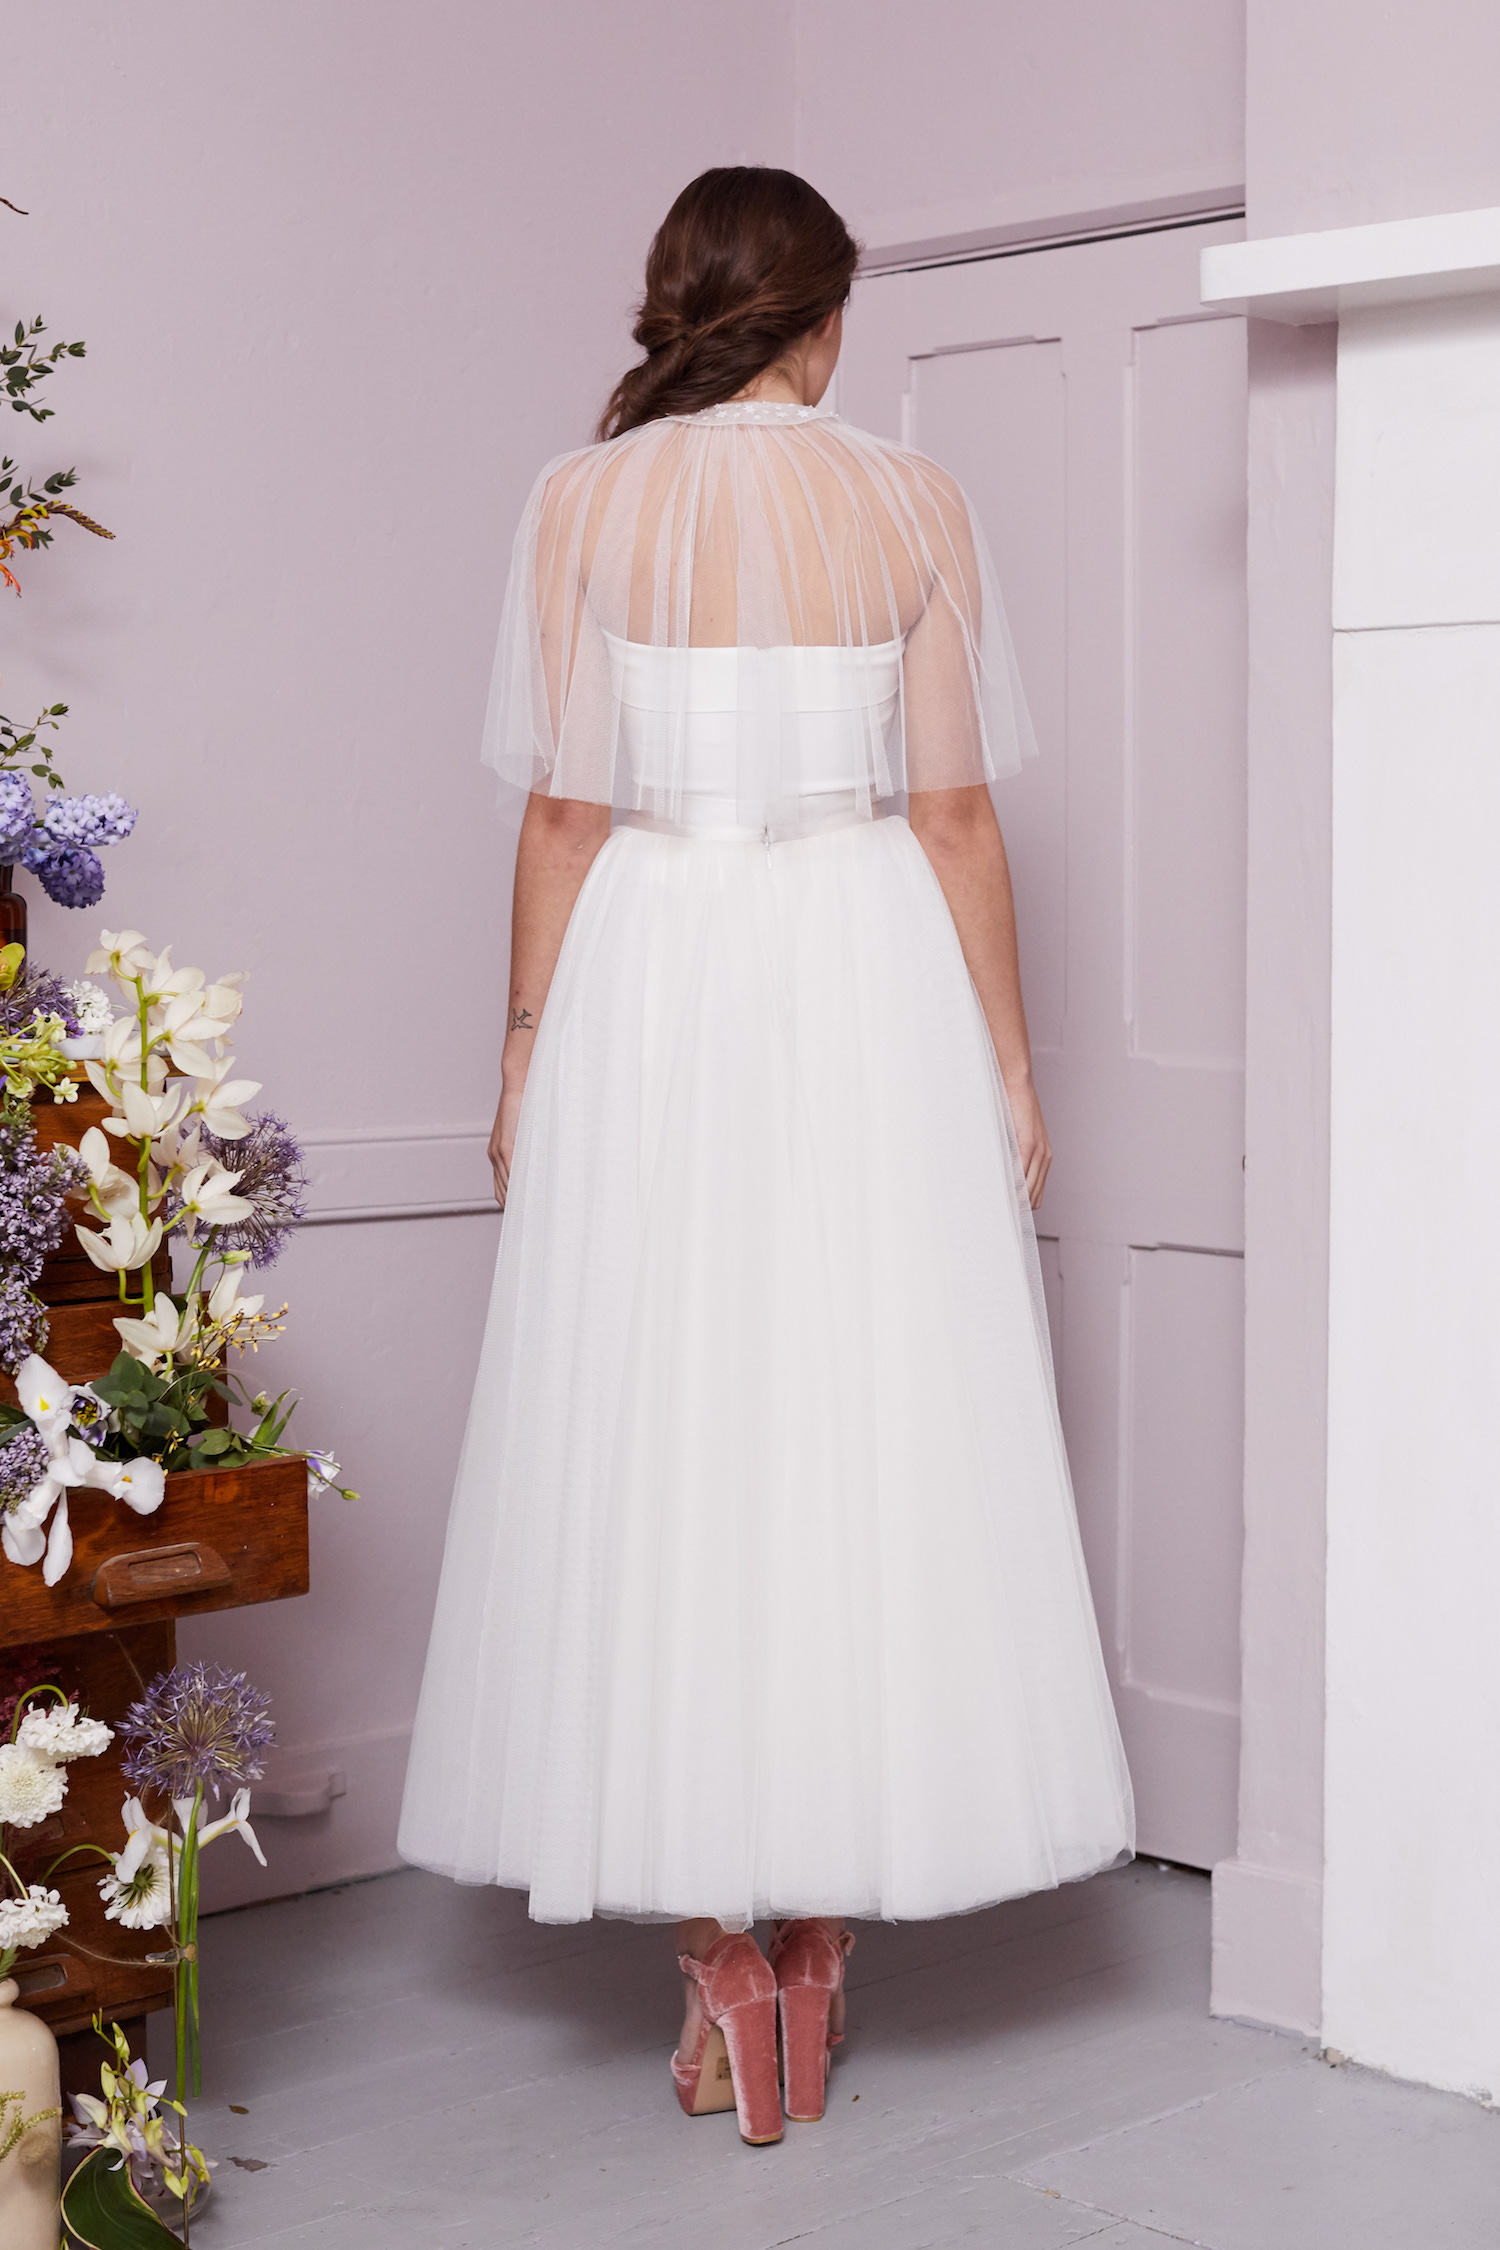 CAMPAGNE CAPE SHORT, RILEY CORSET & HOCKNEY SKIRT | WEDDING DRESS BY HALFPENNY LONDON